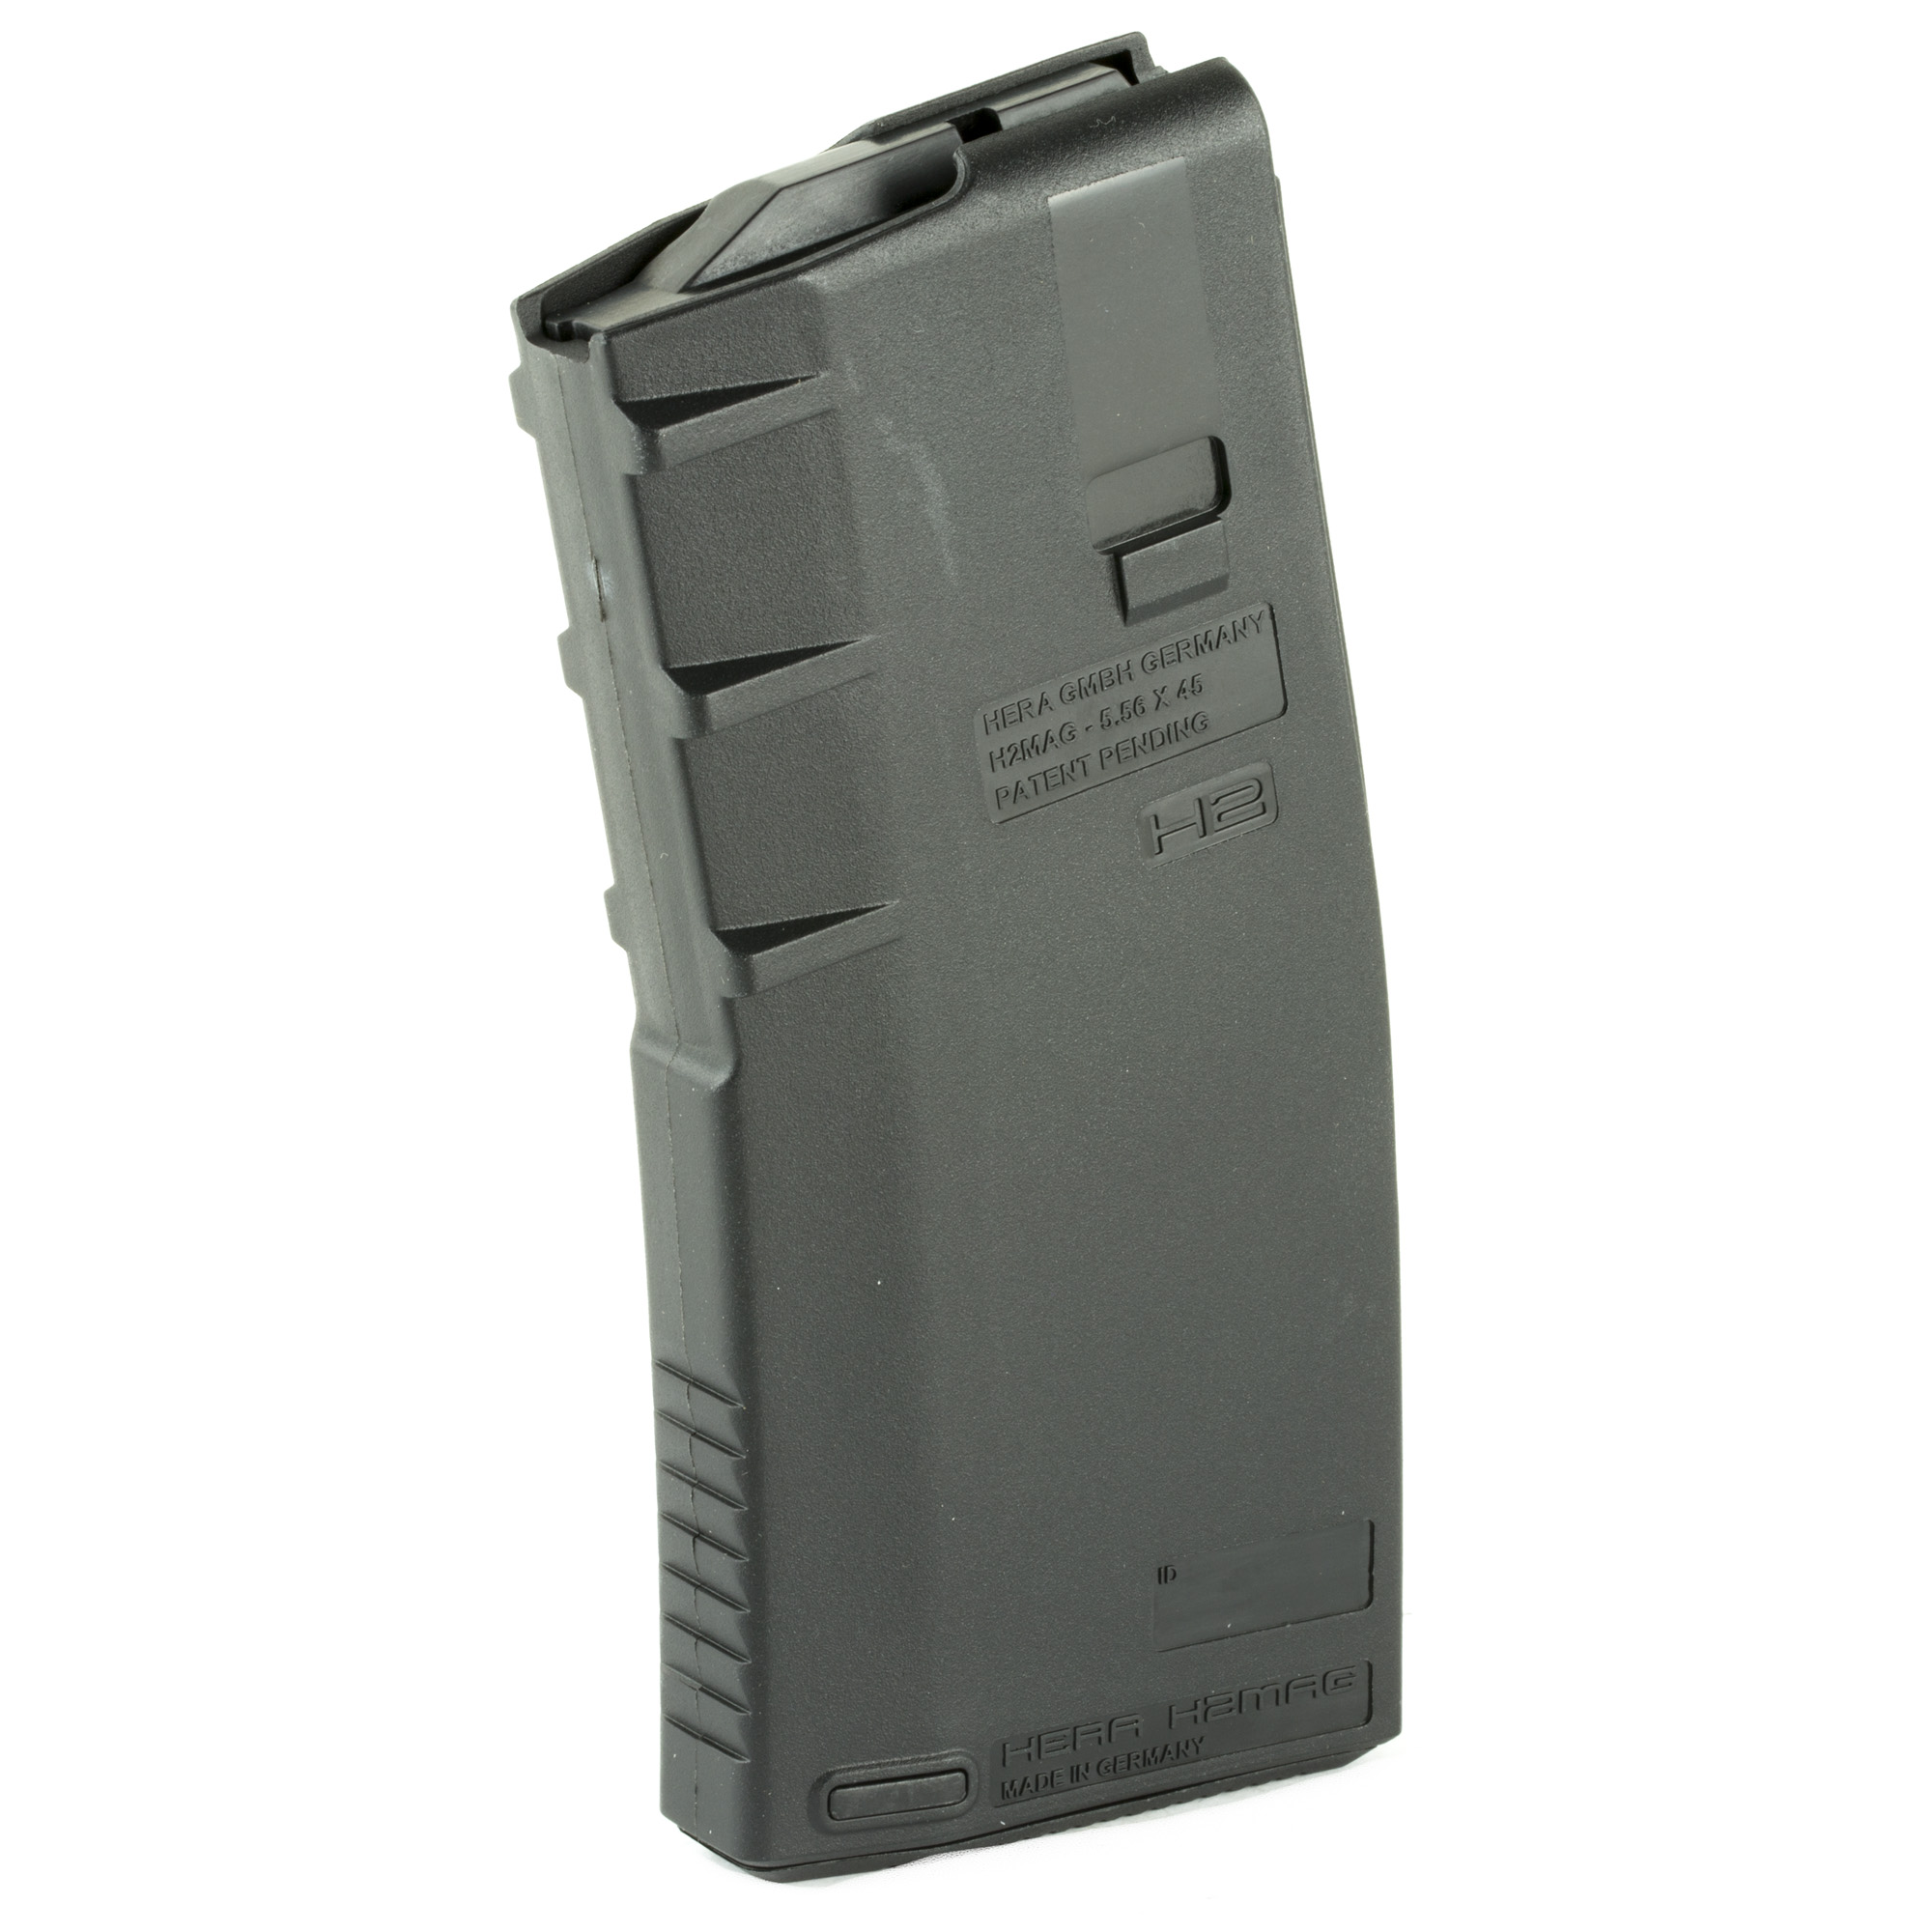 """The HERA USA H2 magazines are built from high quality impact resistant polymer. HERA magazines are compatible with standard AR-15 rifles"""" pistols"""" and lower receivers."""